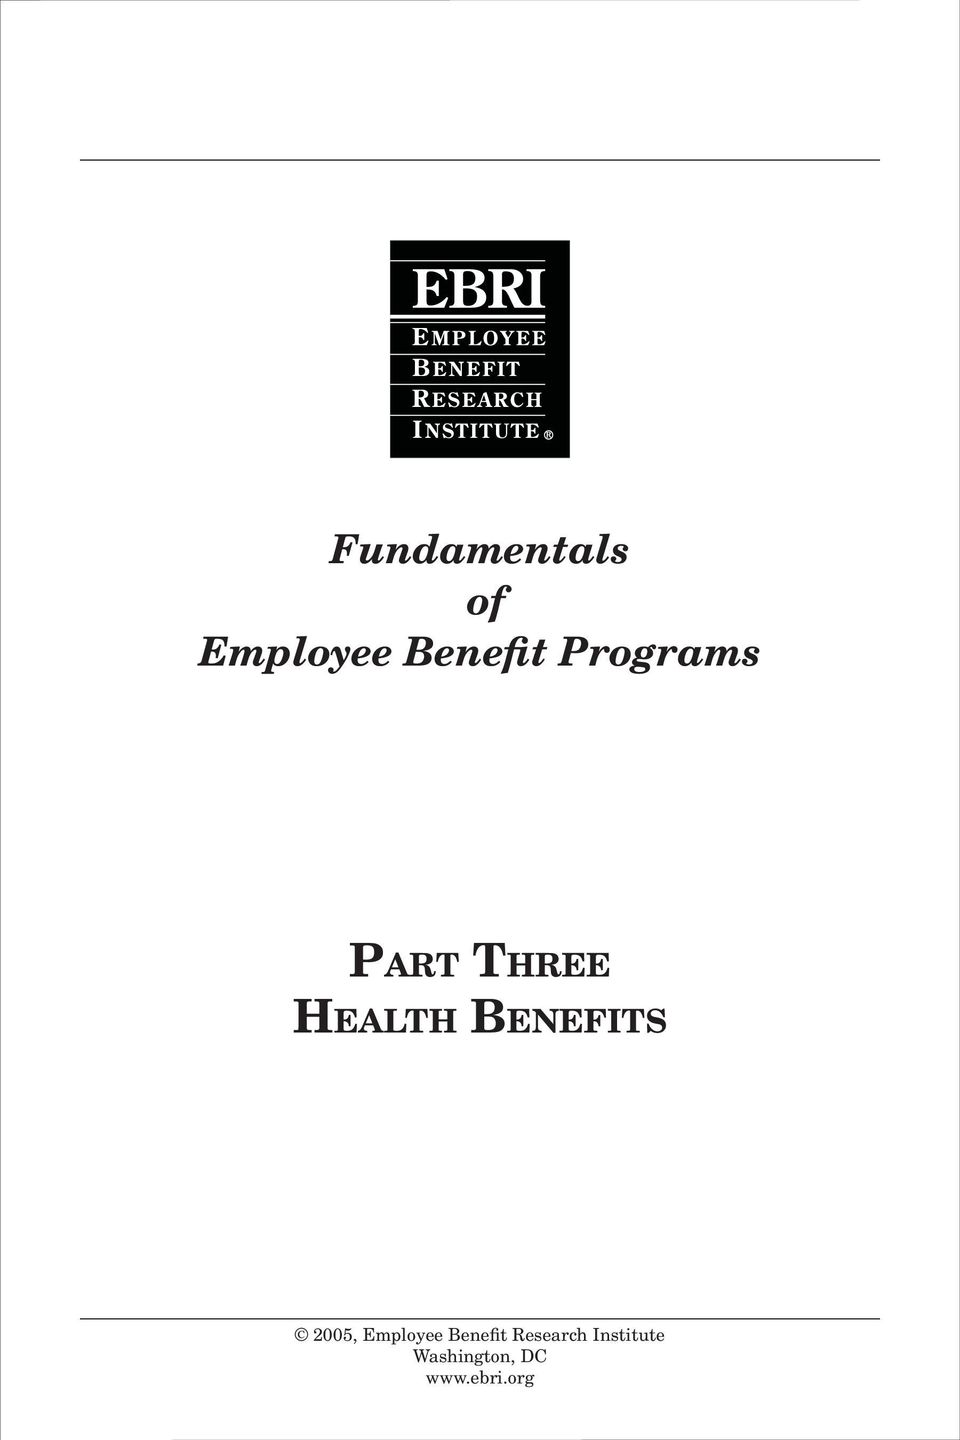 BENEFITS 2005, Employee Benefit